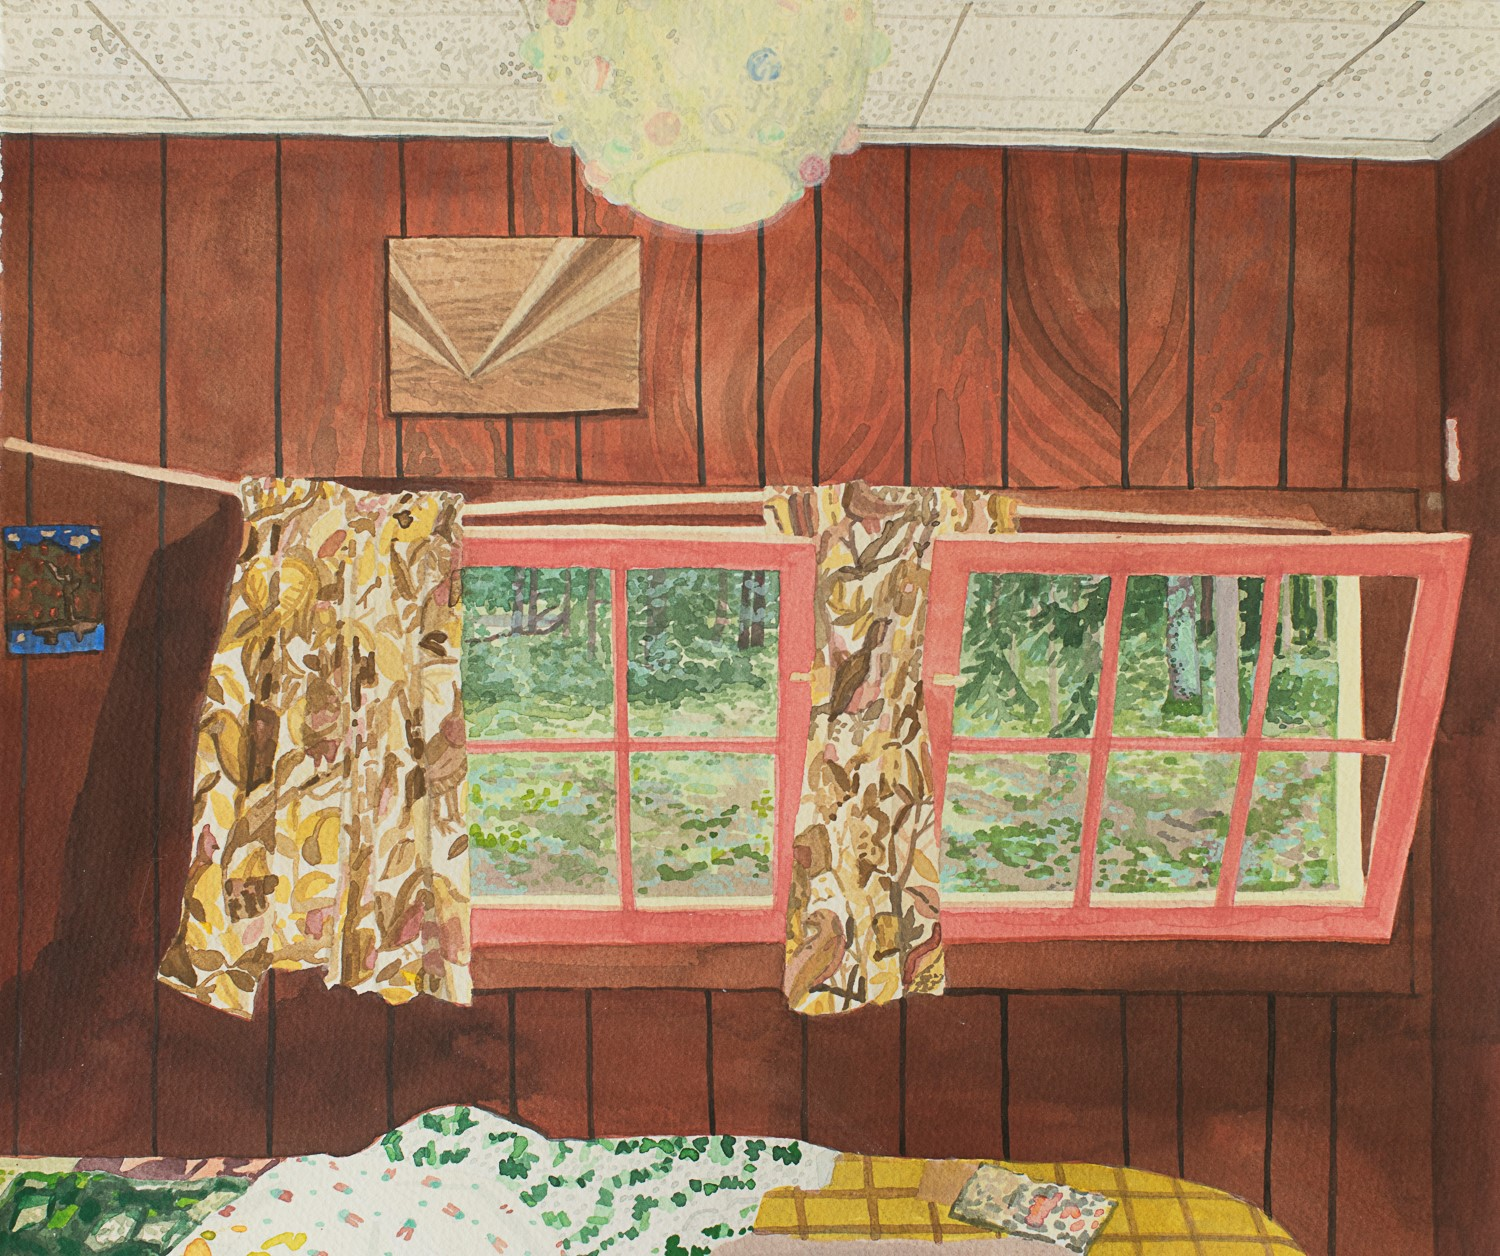 Breehan James  The Cottage: marble light bedroom,  2019 gouache on paper, 10 x 13 inches